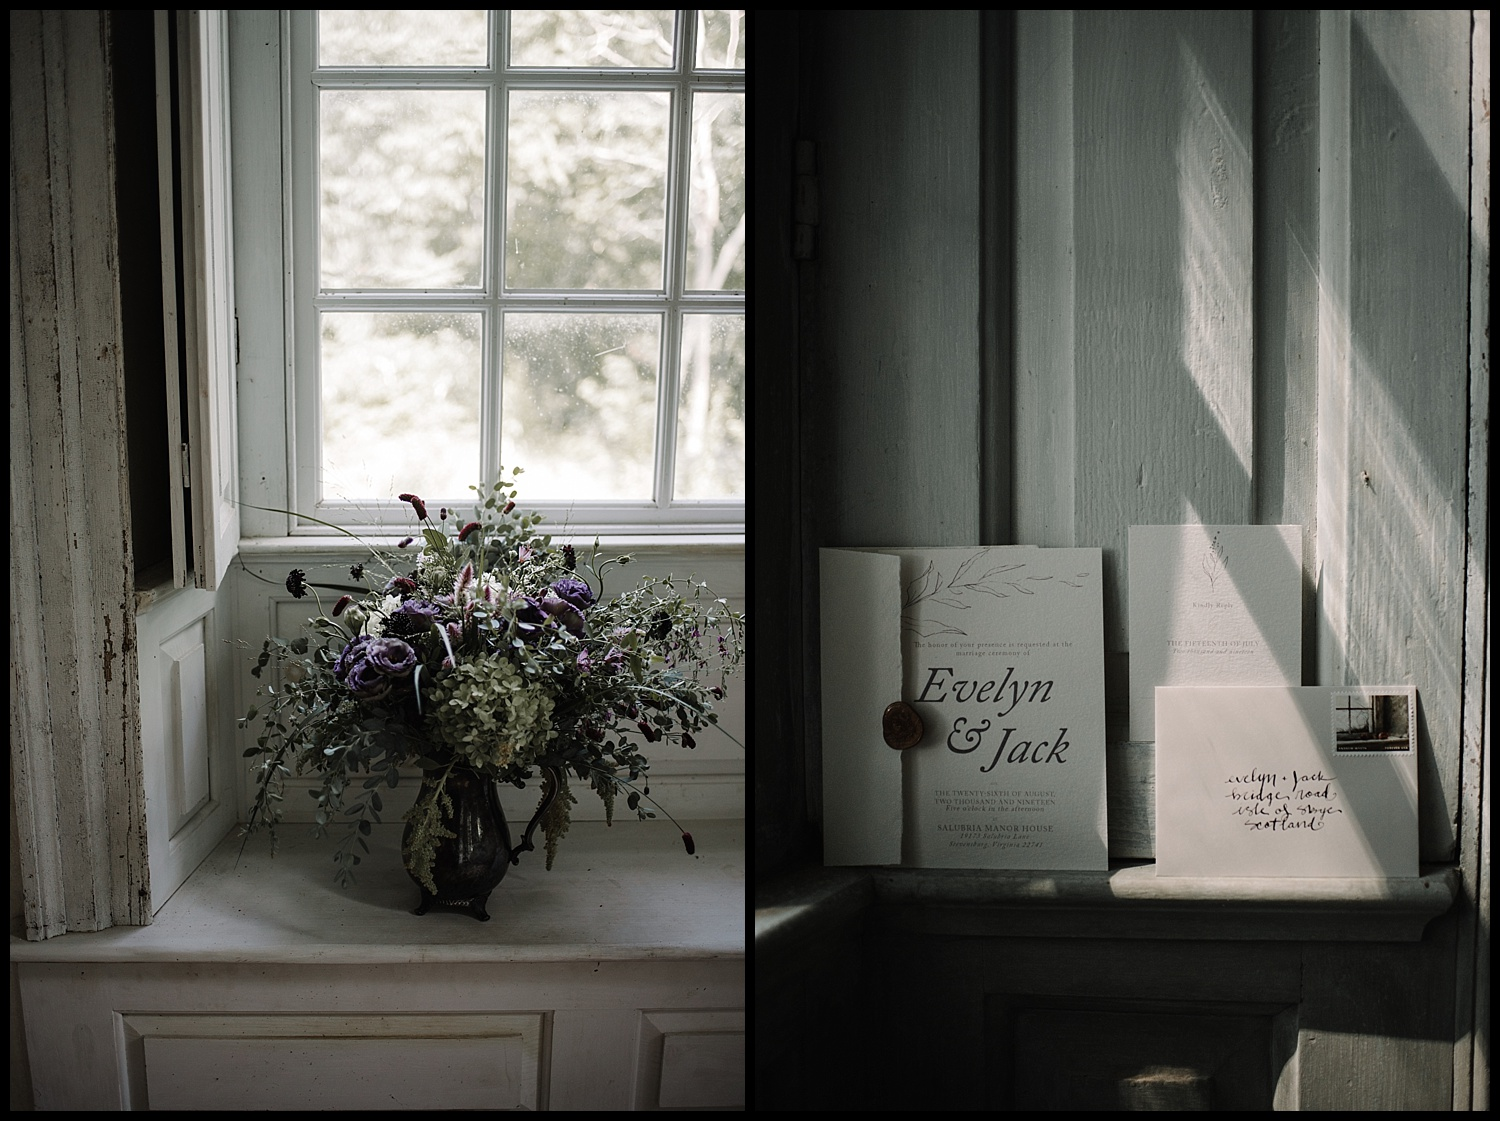 Salubria Historic Manor House Virginia - Moody Scottish Highland Wedding Styled Shoot - White Sails Creative - Sage and Silhouettes - BHLDN - Bijous Sweet Treats_16.jpg